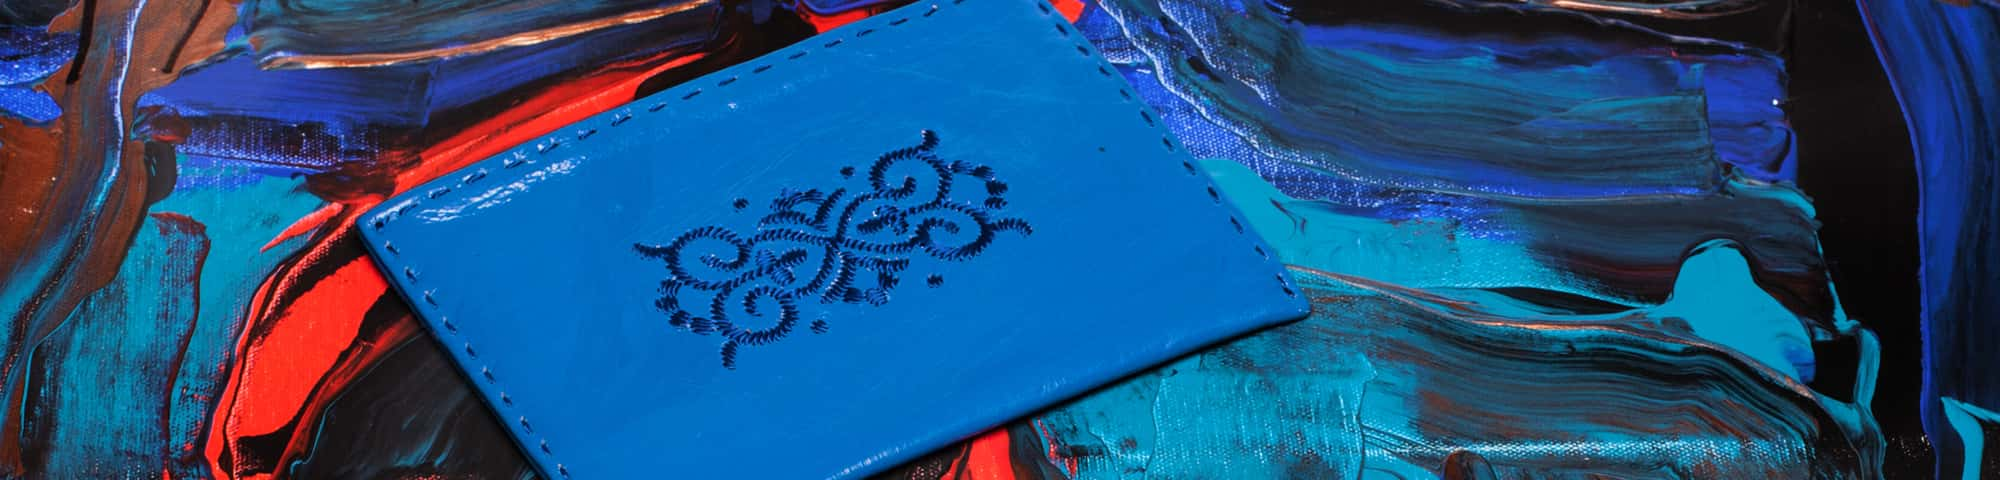 small christmas gift ideas: blue embroidered leather pouch